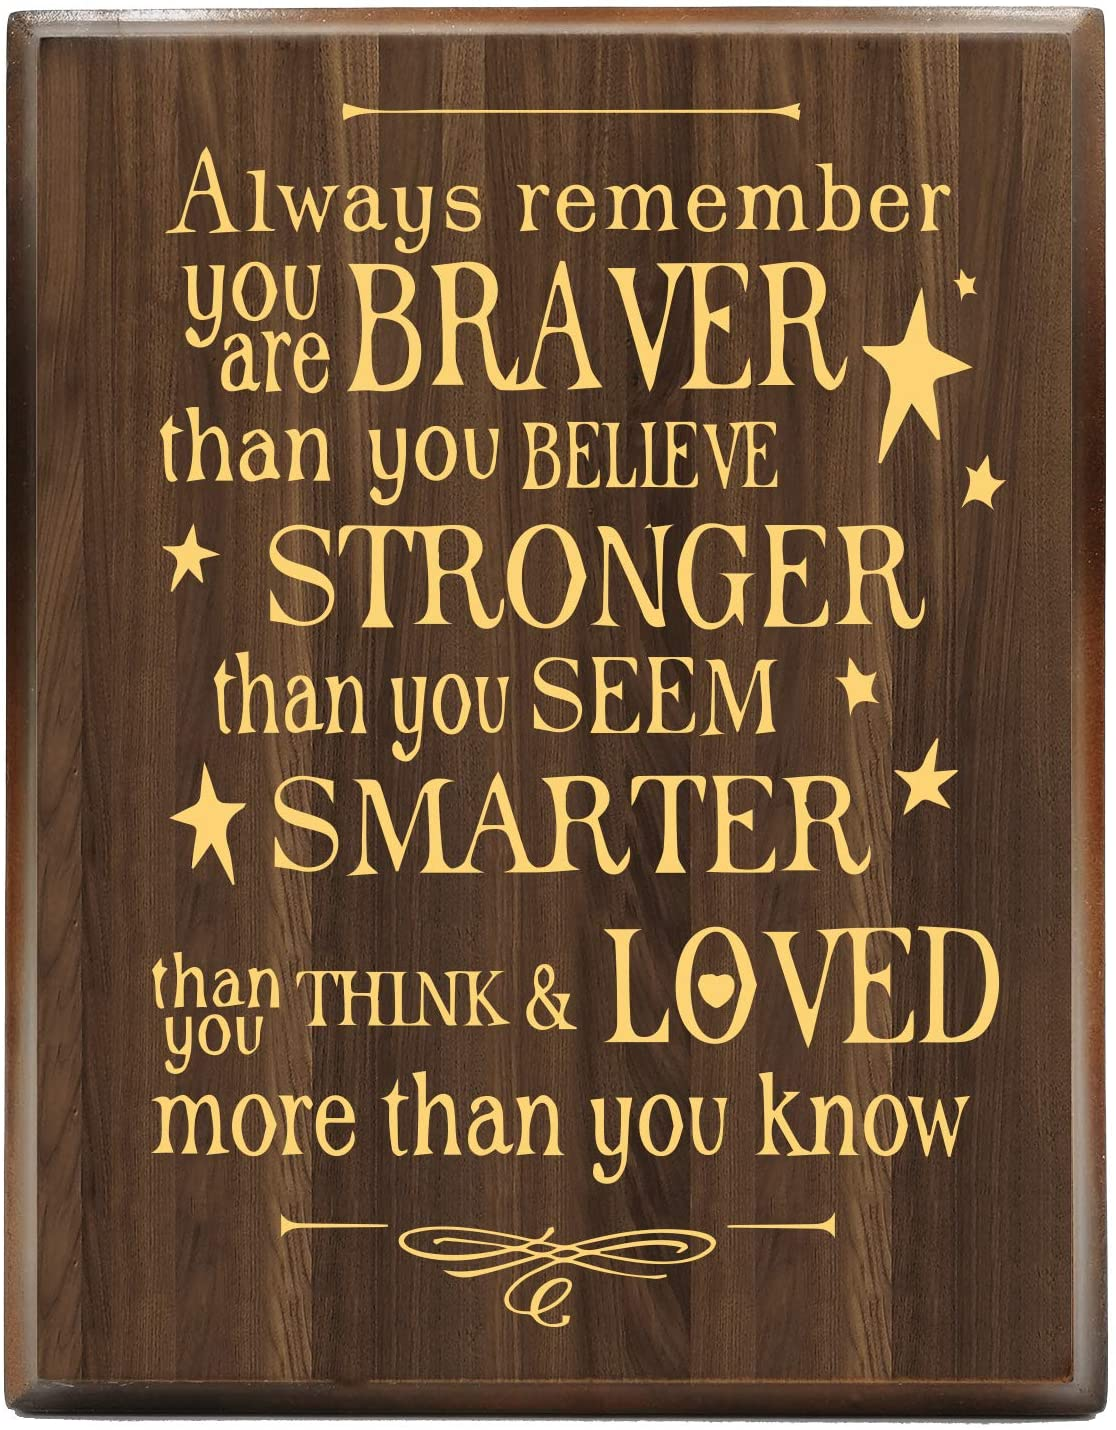 yuzi-n Always Remember You are Braver Than You Think - Inspirational Gifts Positive Engraved Gold Wood Plaque Gift for Birthday - Presents for Mom Sister Grandma